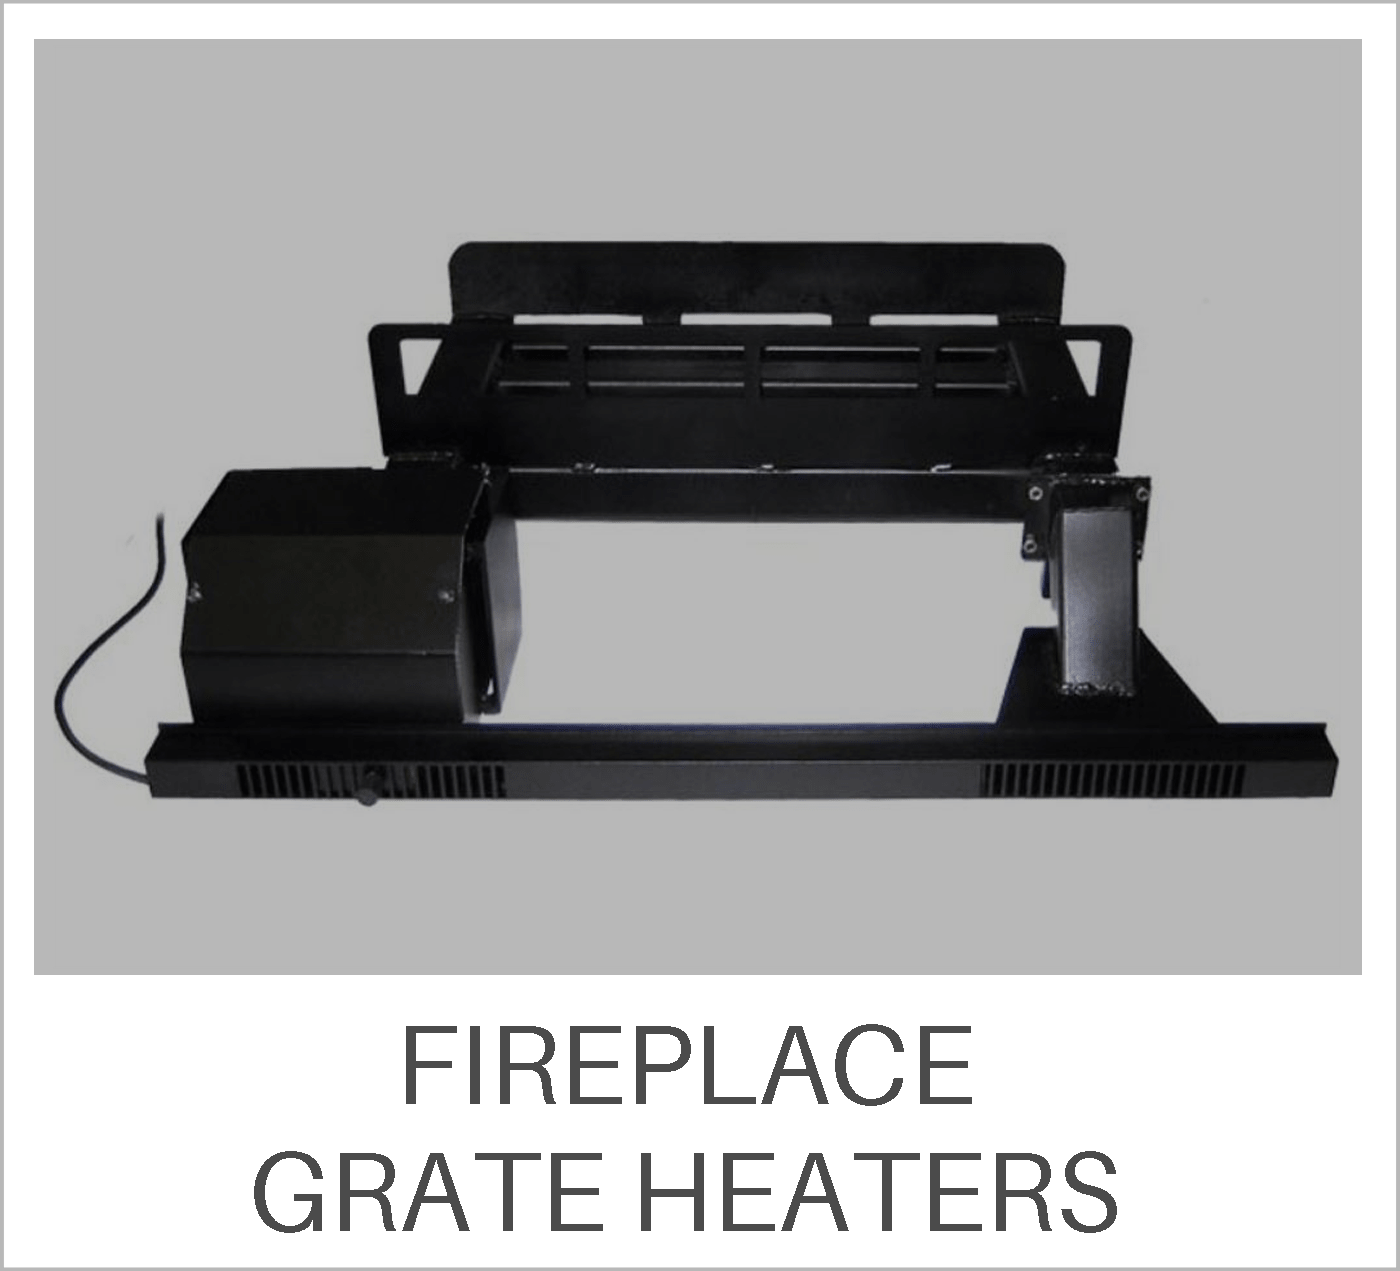 Fireplace Grate Heaters Learning Center